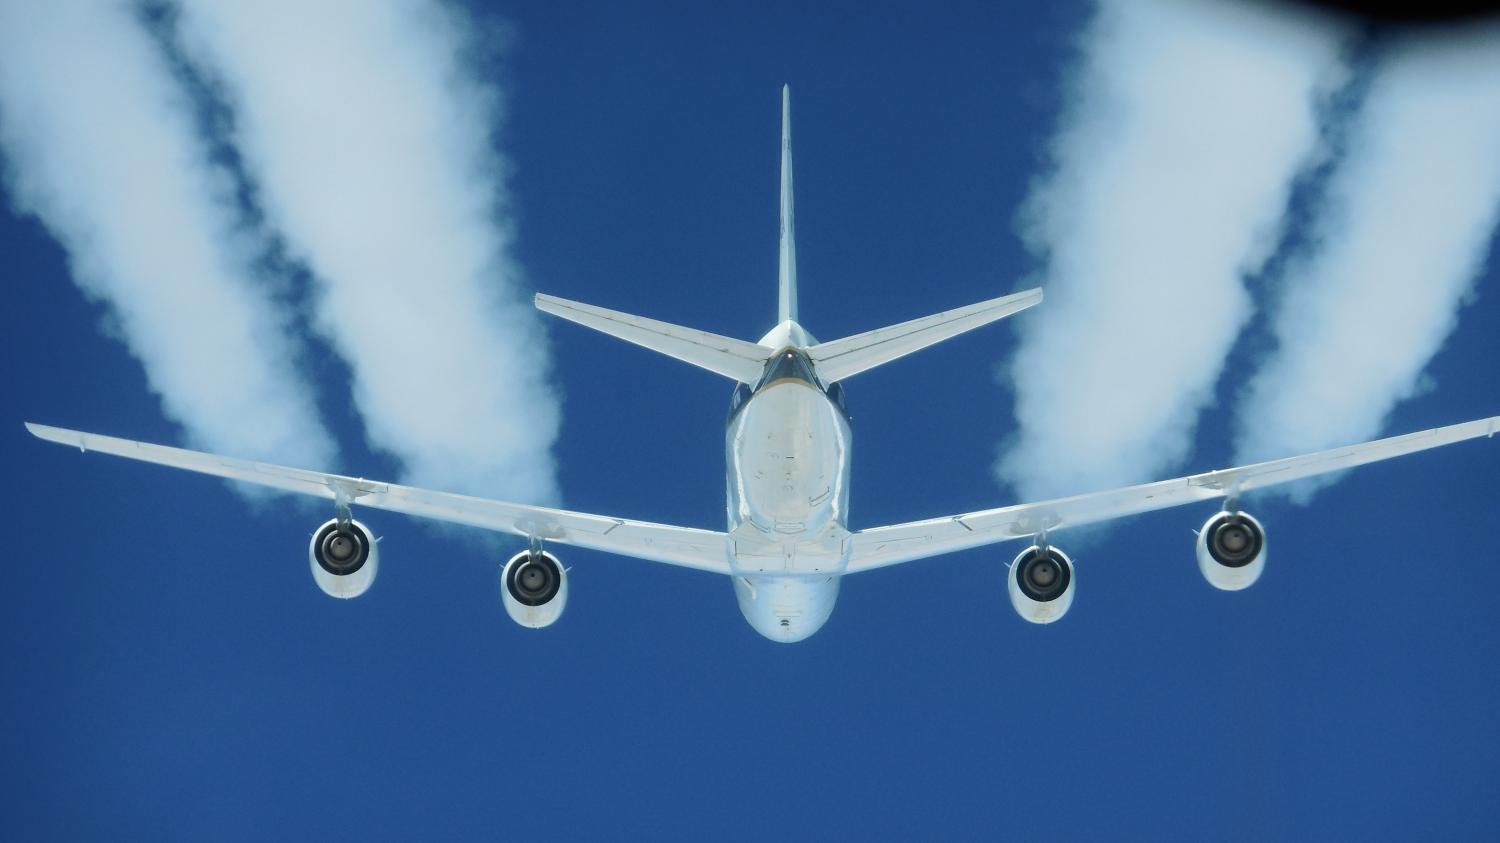 NASA says biofuels could massively reduce jet engine particles